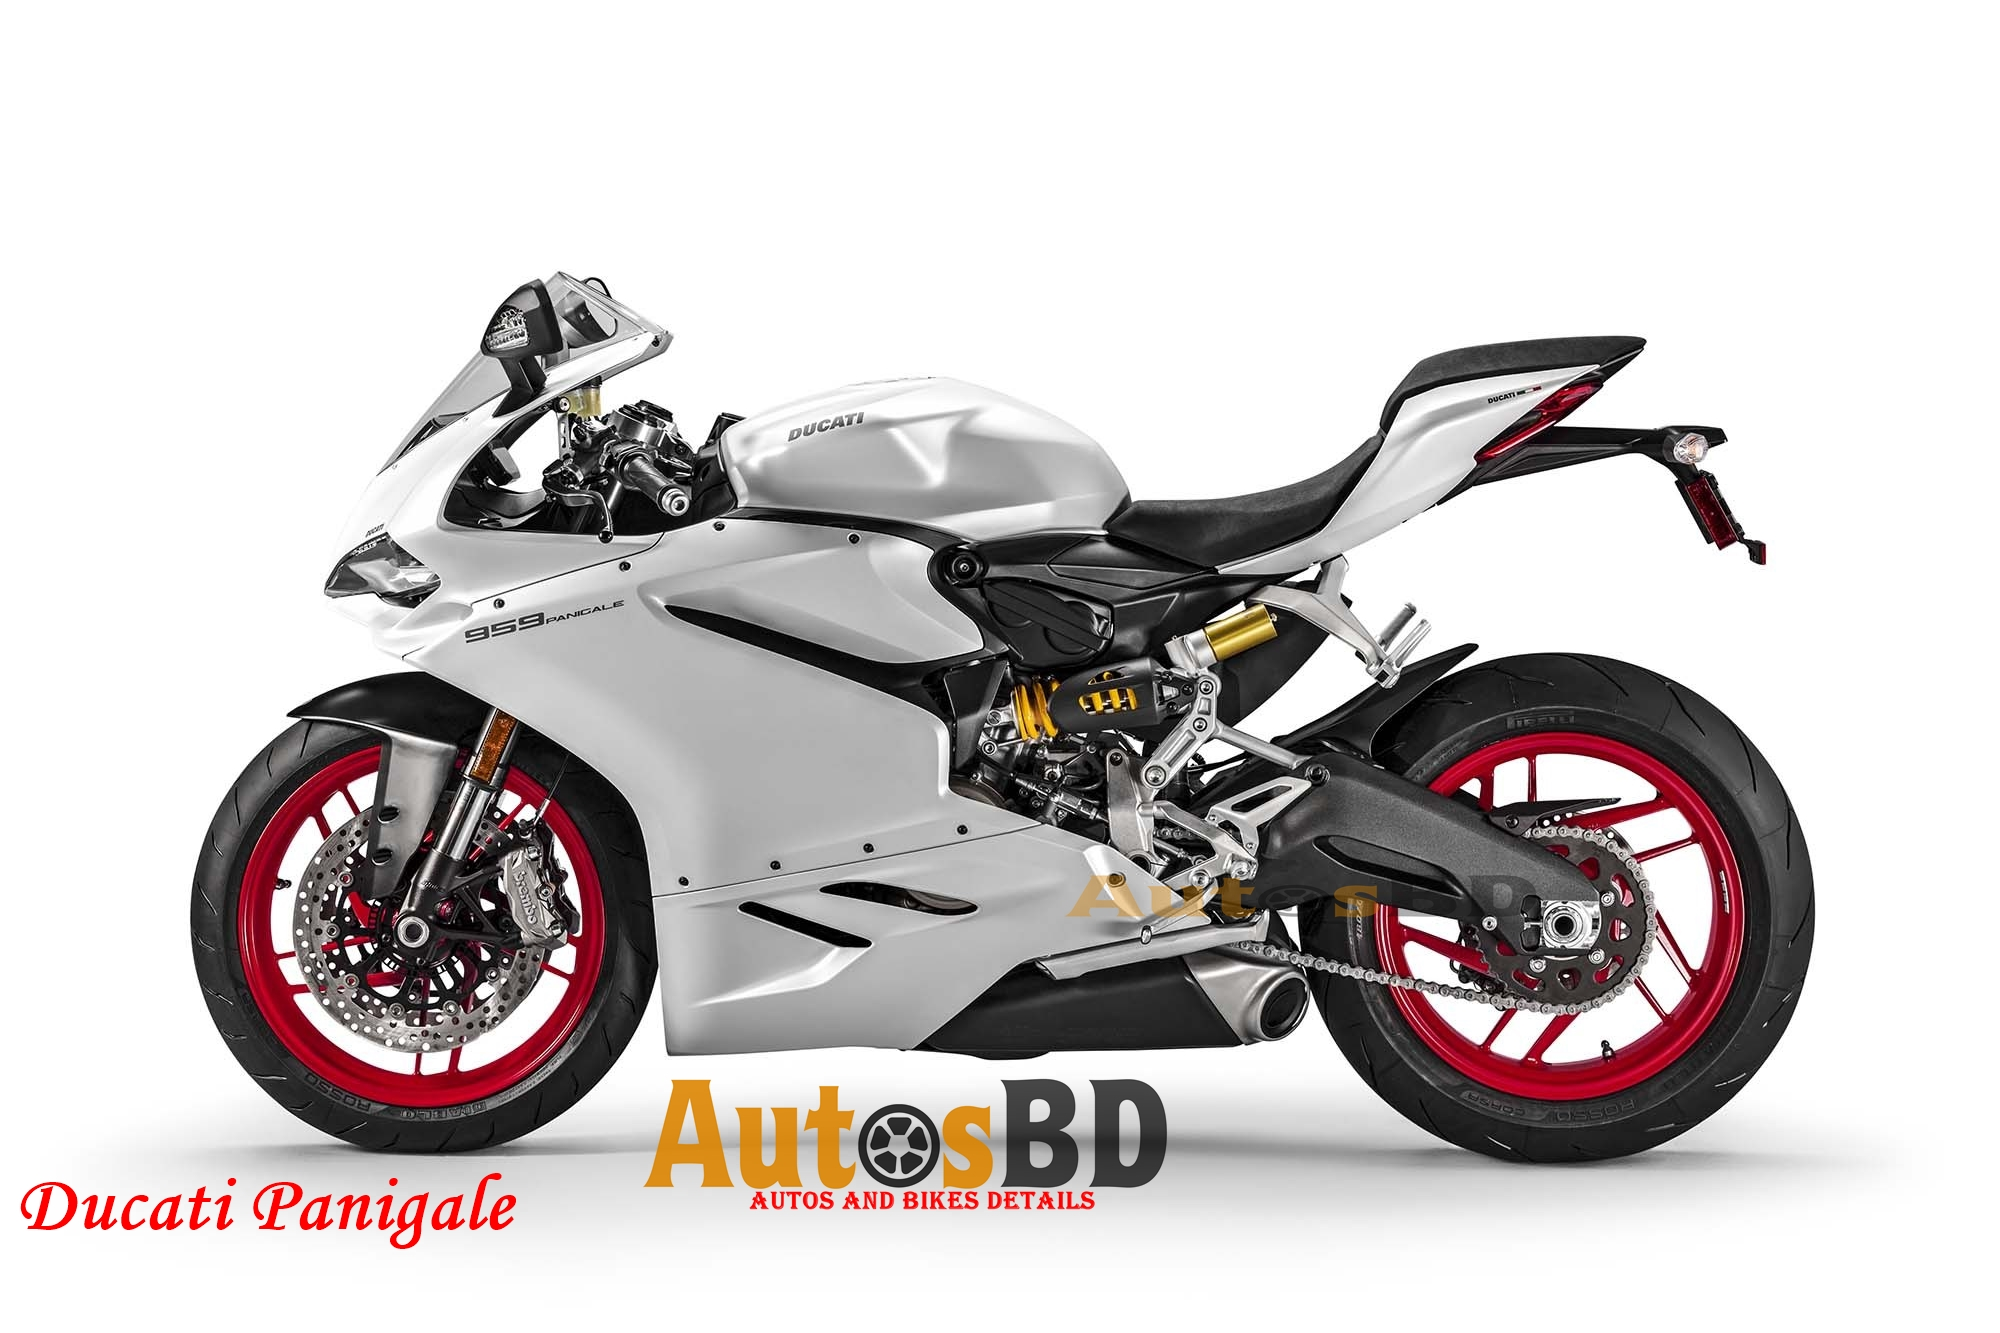 Ducati Panigale Motorcycle Price in India